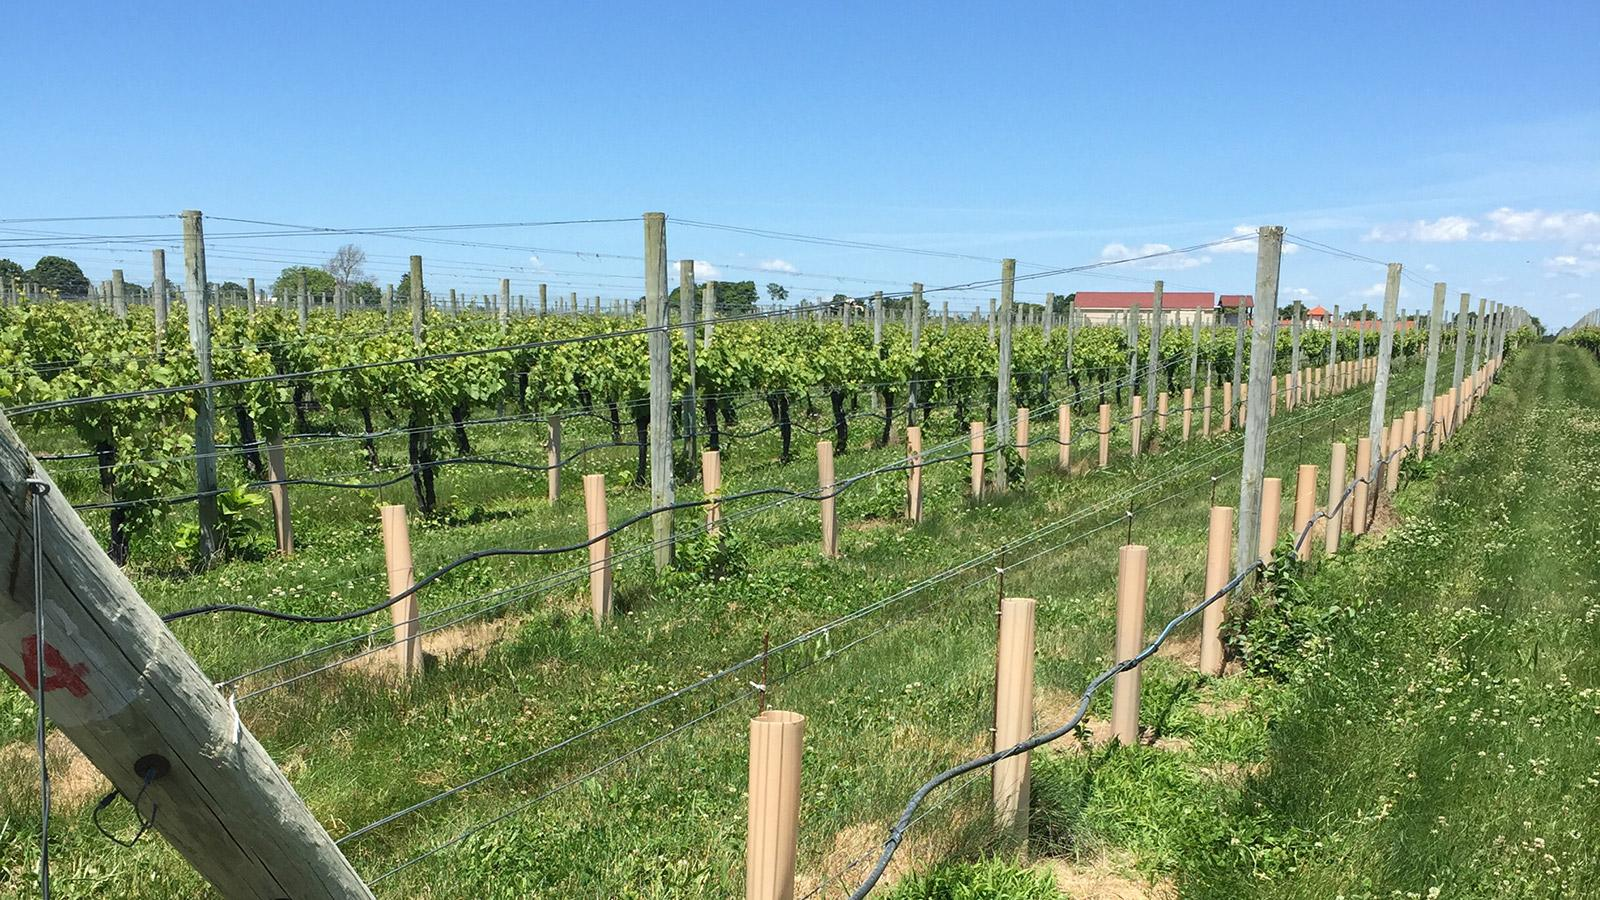 At Raphael, winemaker Anthony Nappa is overseeing new plantings and graftings.